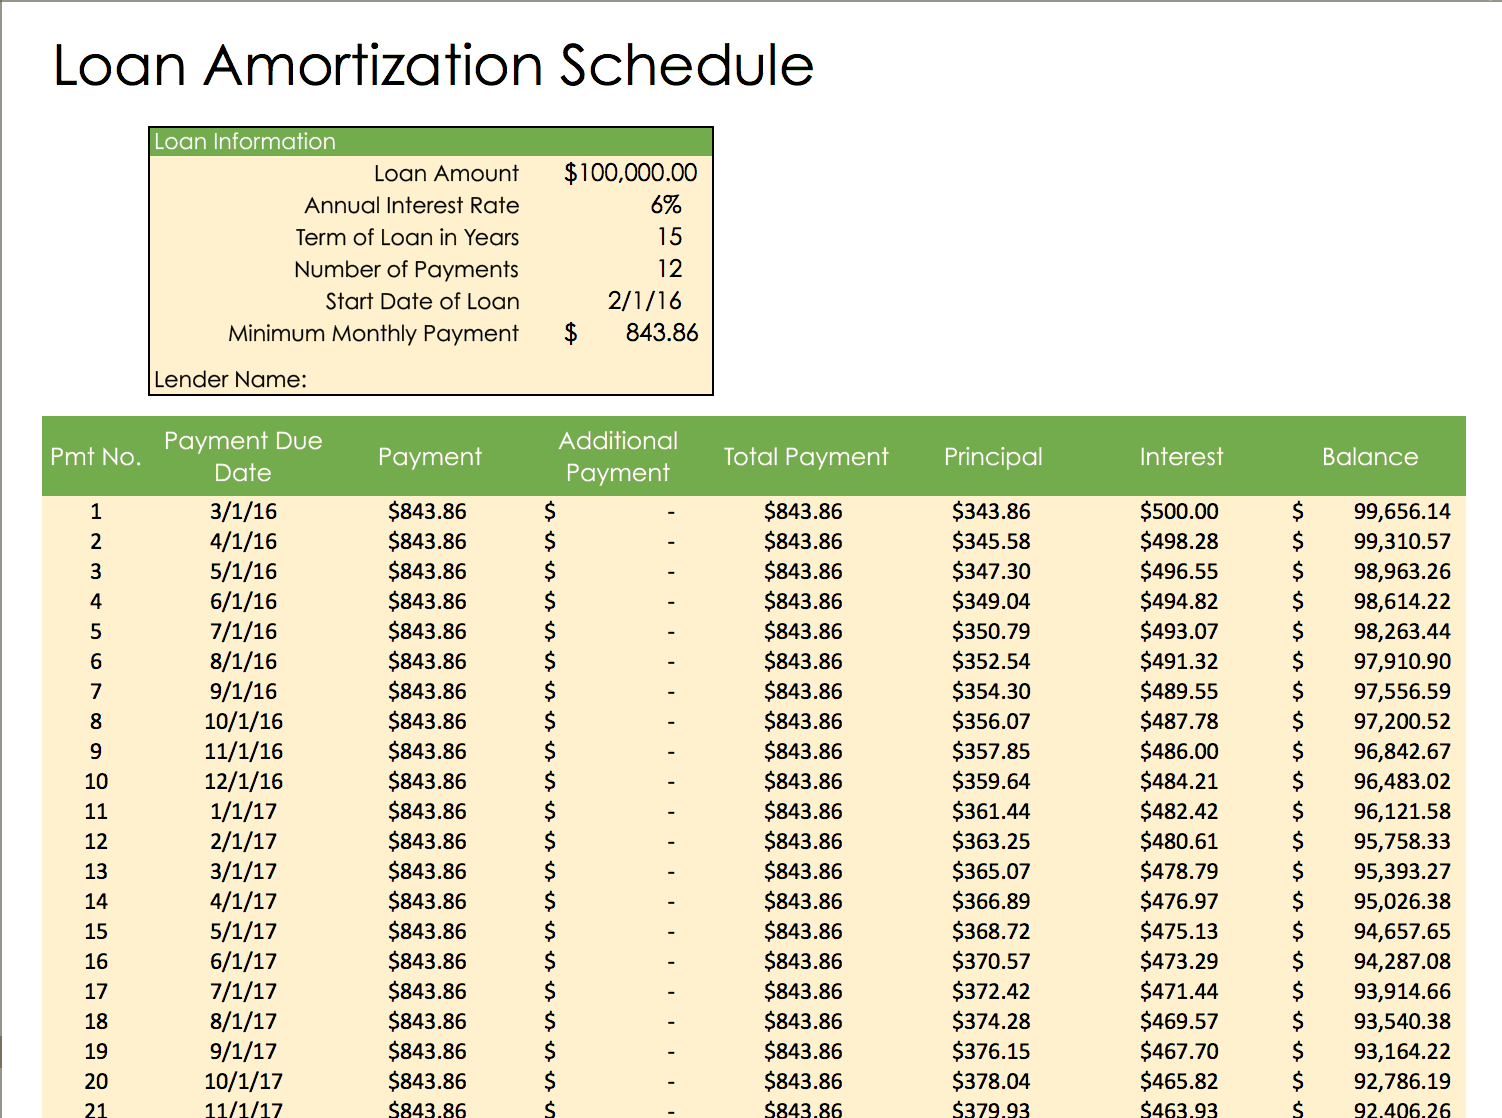 weekly amortization schedule template - Ideal.vistalist.co